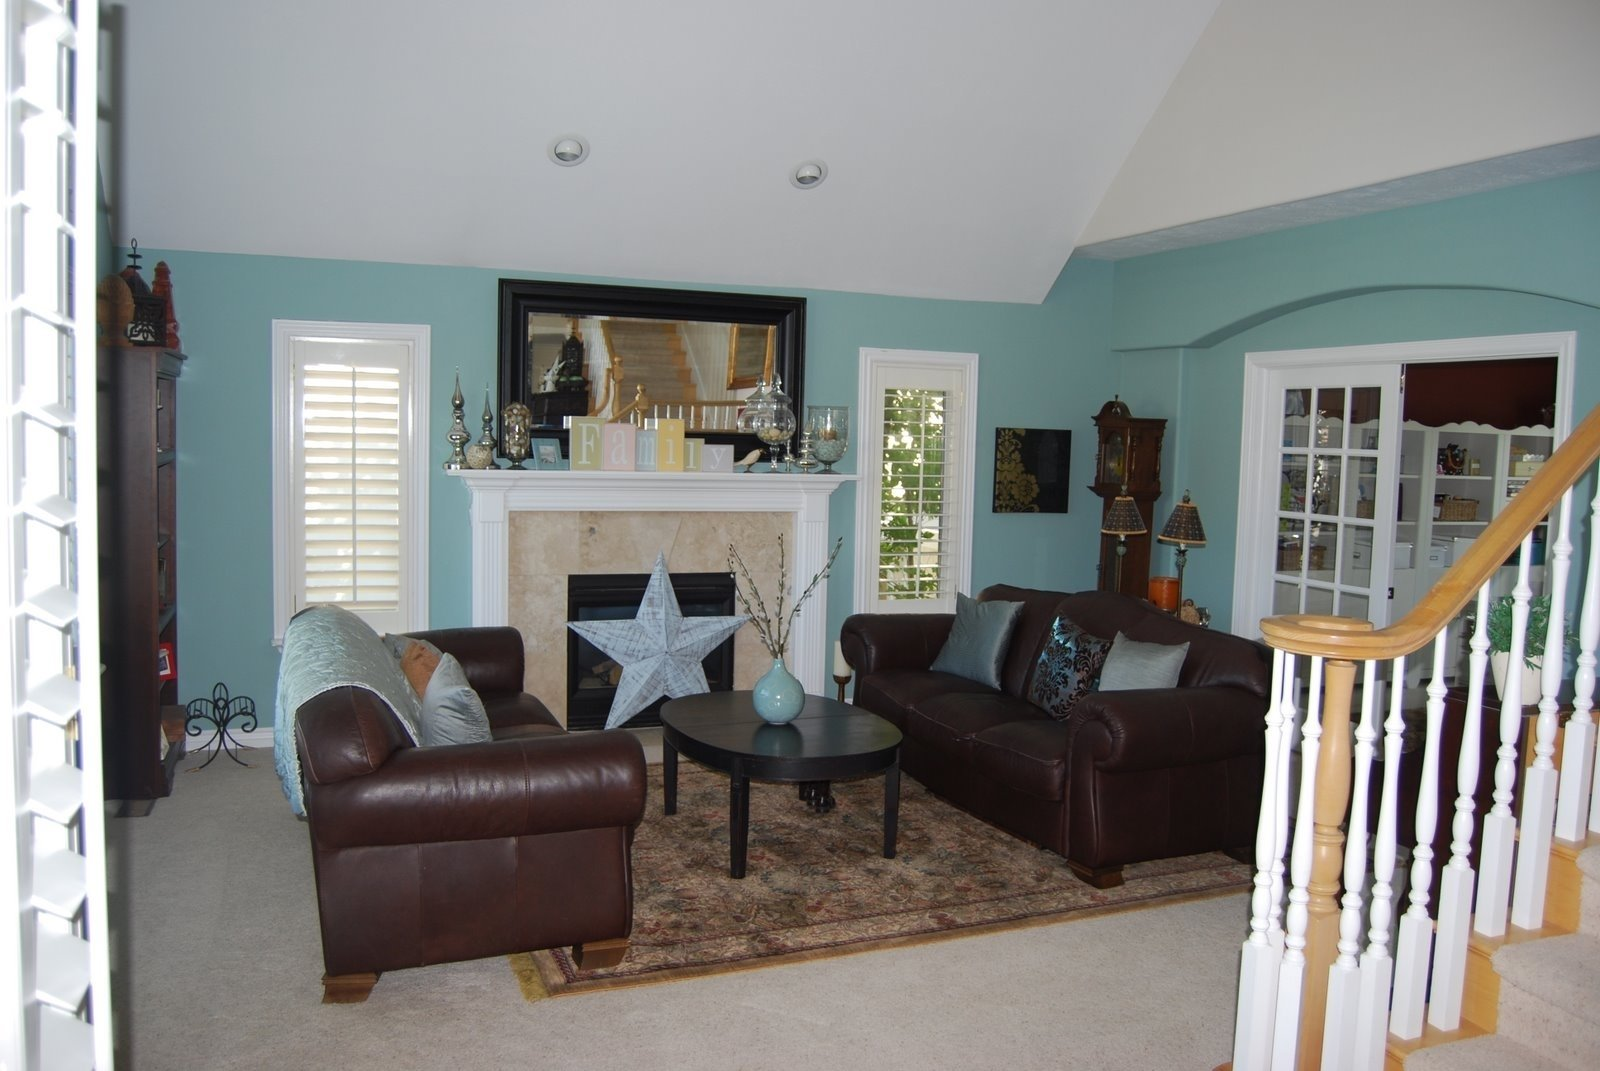 10 Attractive Blue And Brown Living Room Ideas brown and blue living room google search projects to try 1